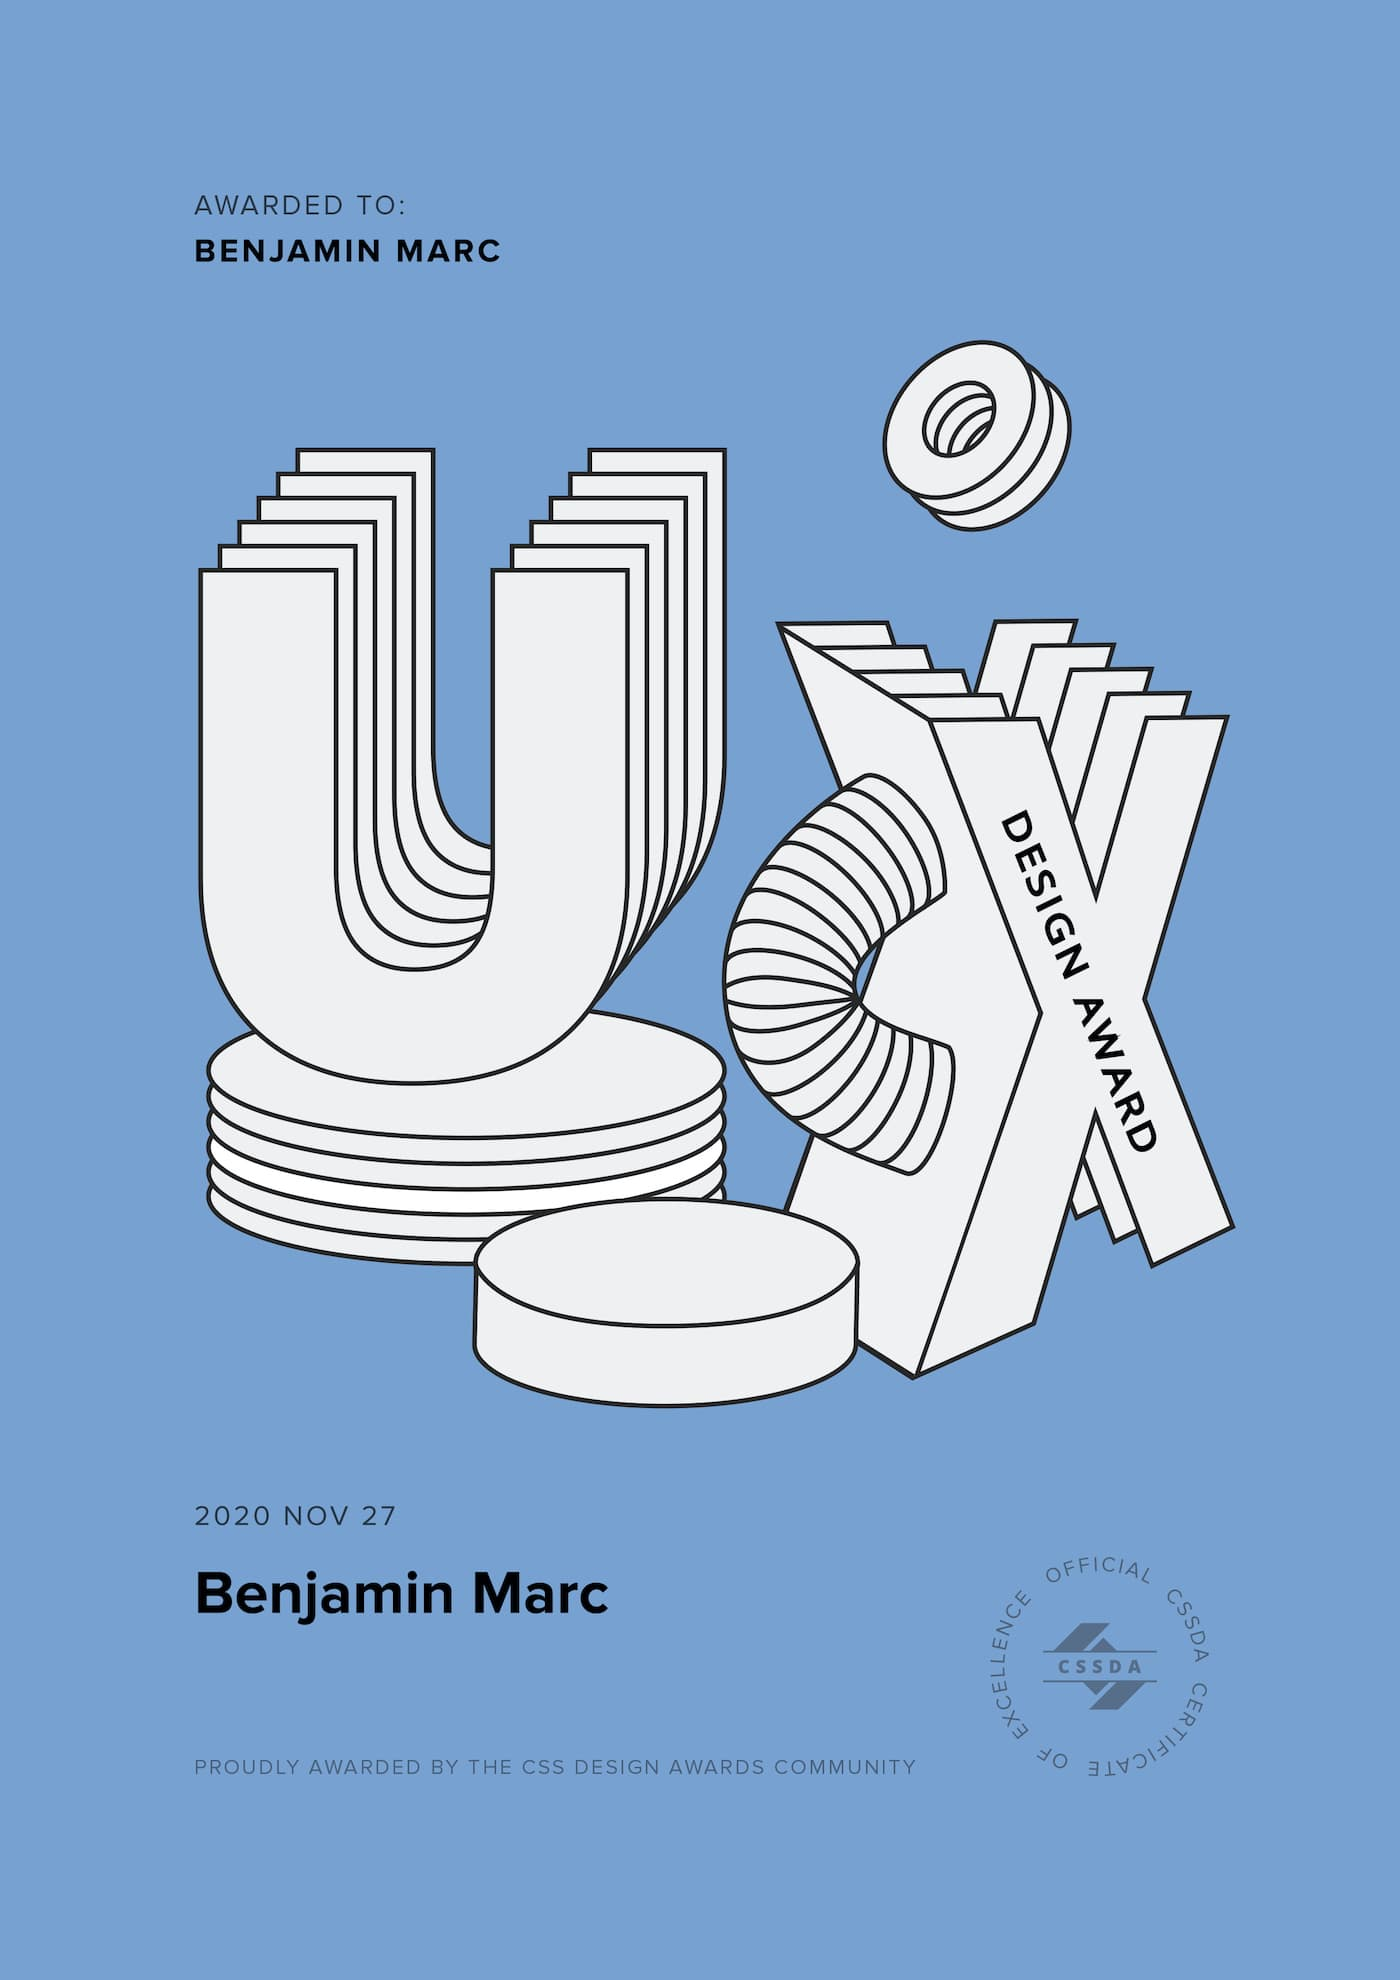 Benjamin Marc Wins Award for Best UI, UX Design and Innovation